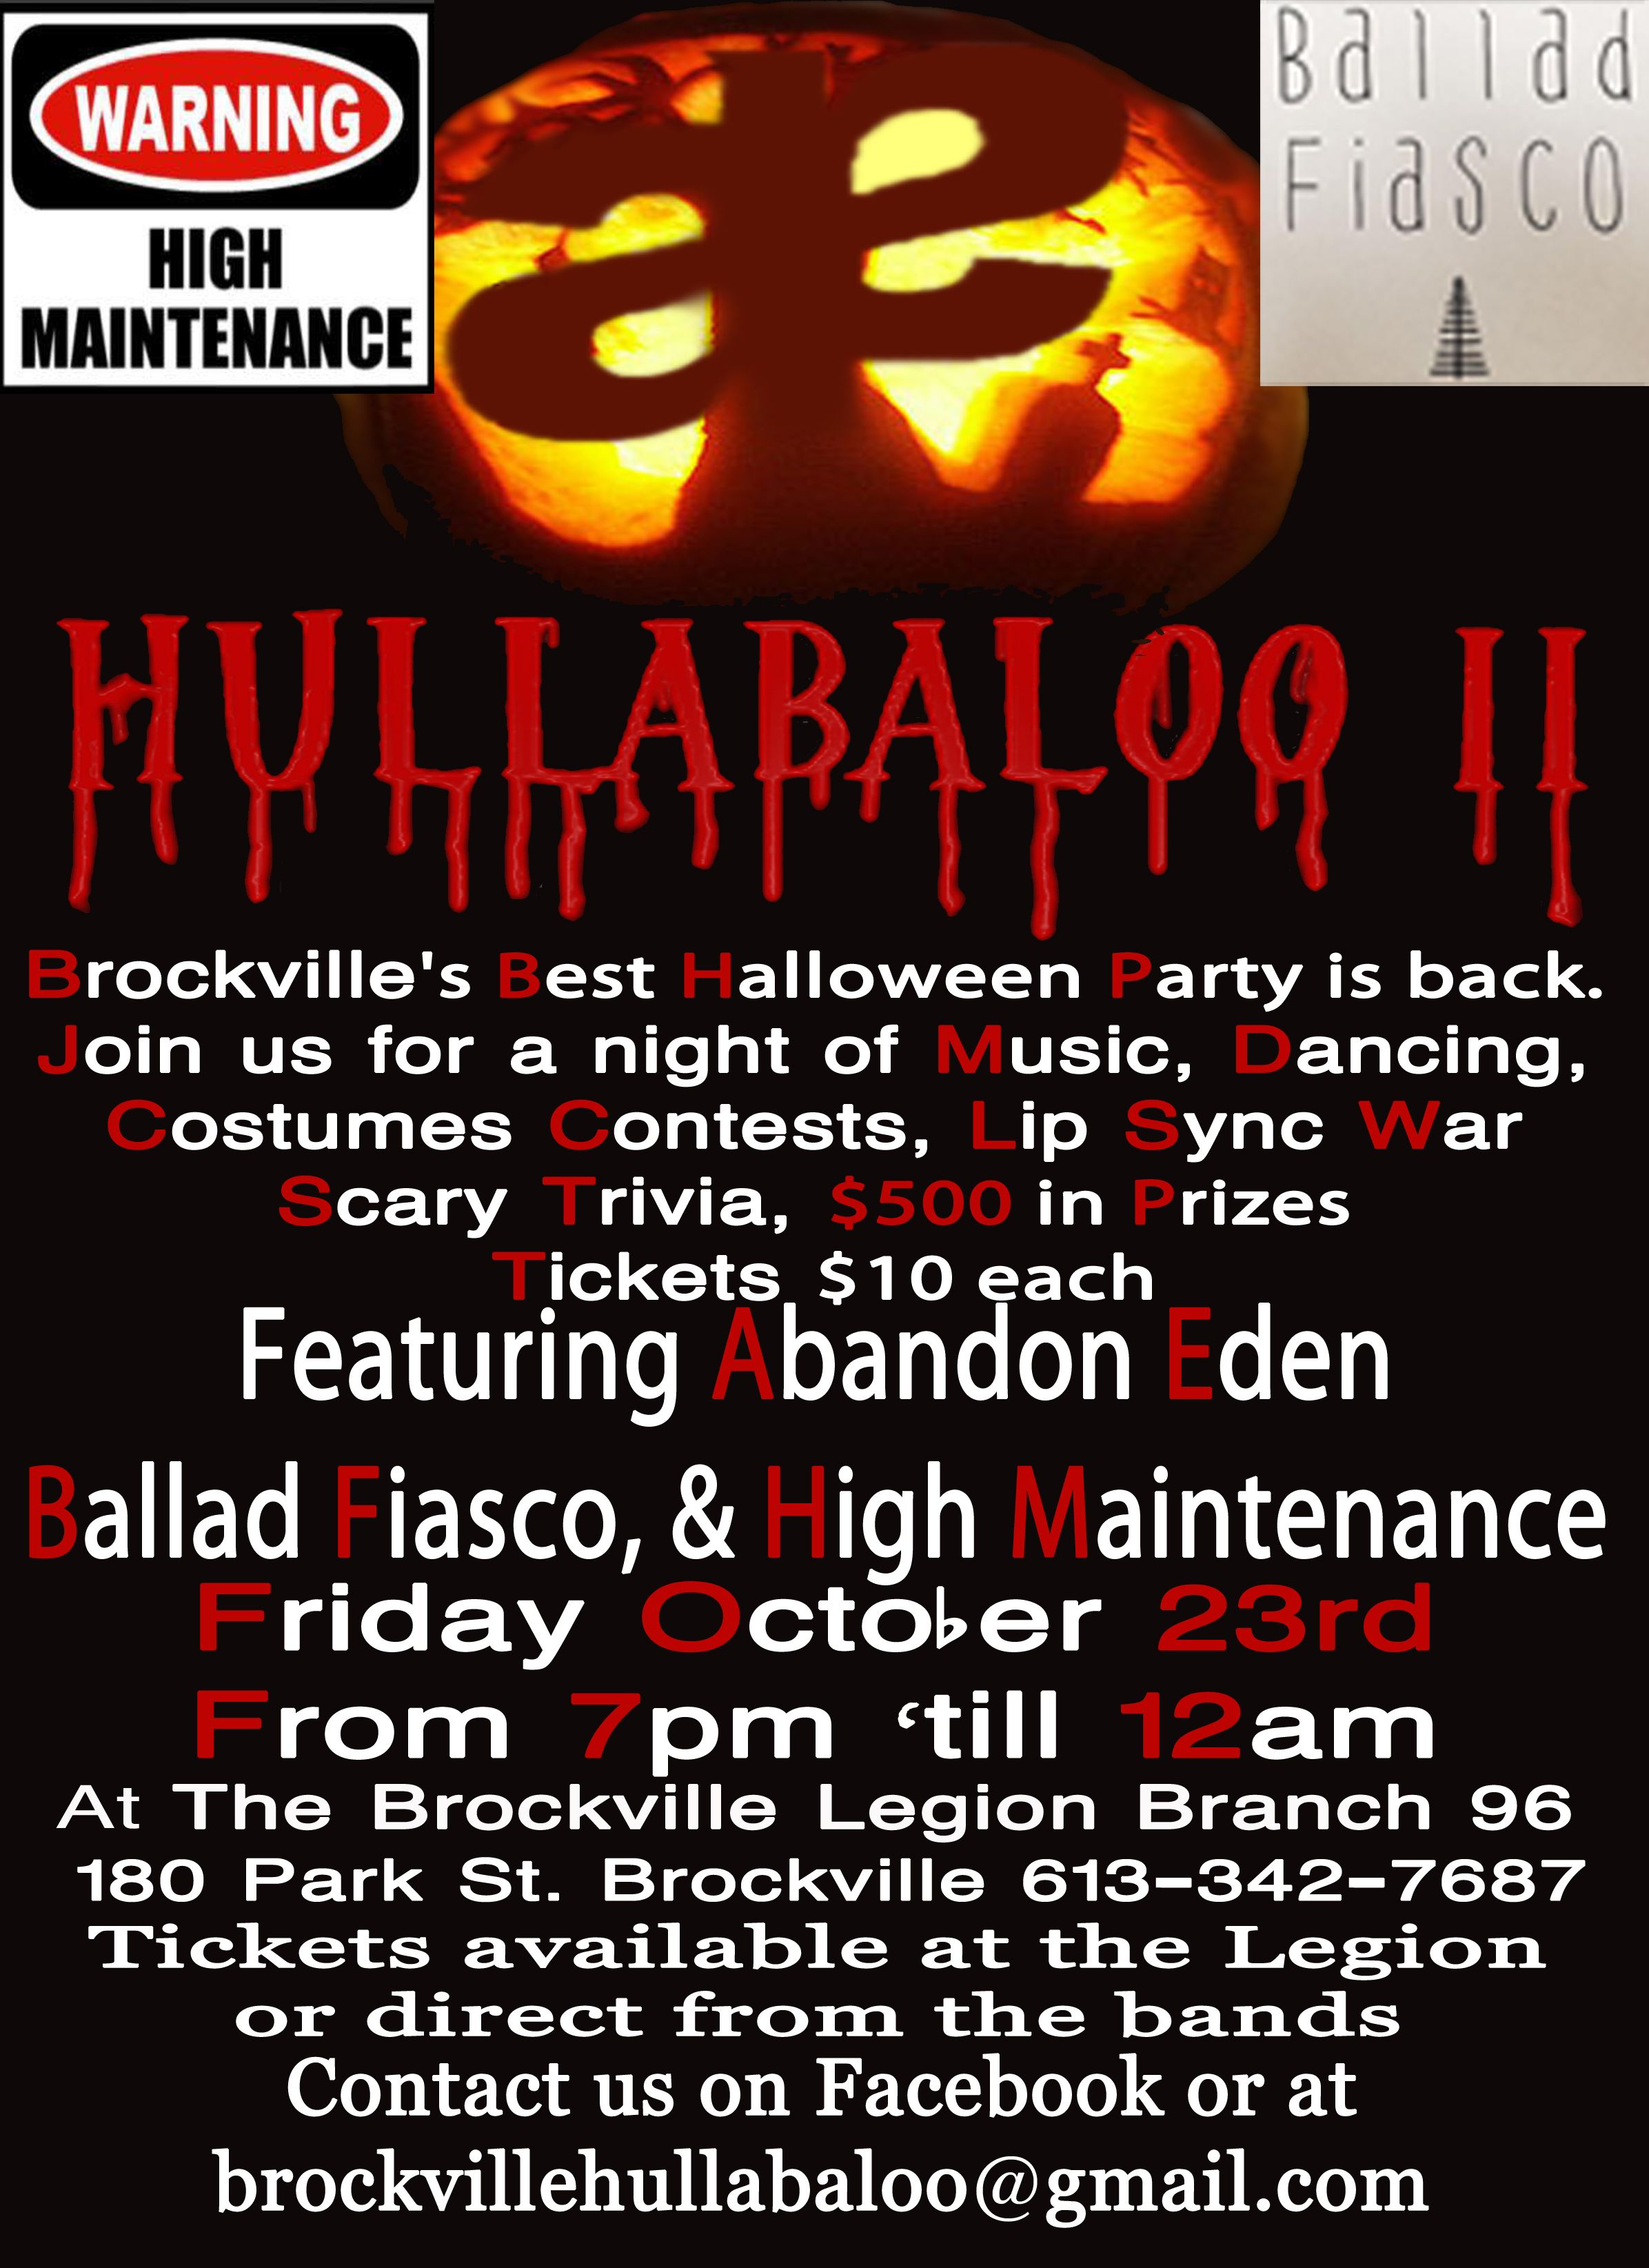 HULLABALOO II Brockville's Best Halloween Party is Back. Join us ...